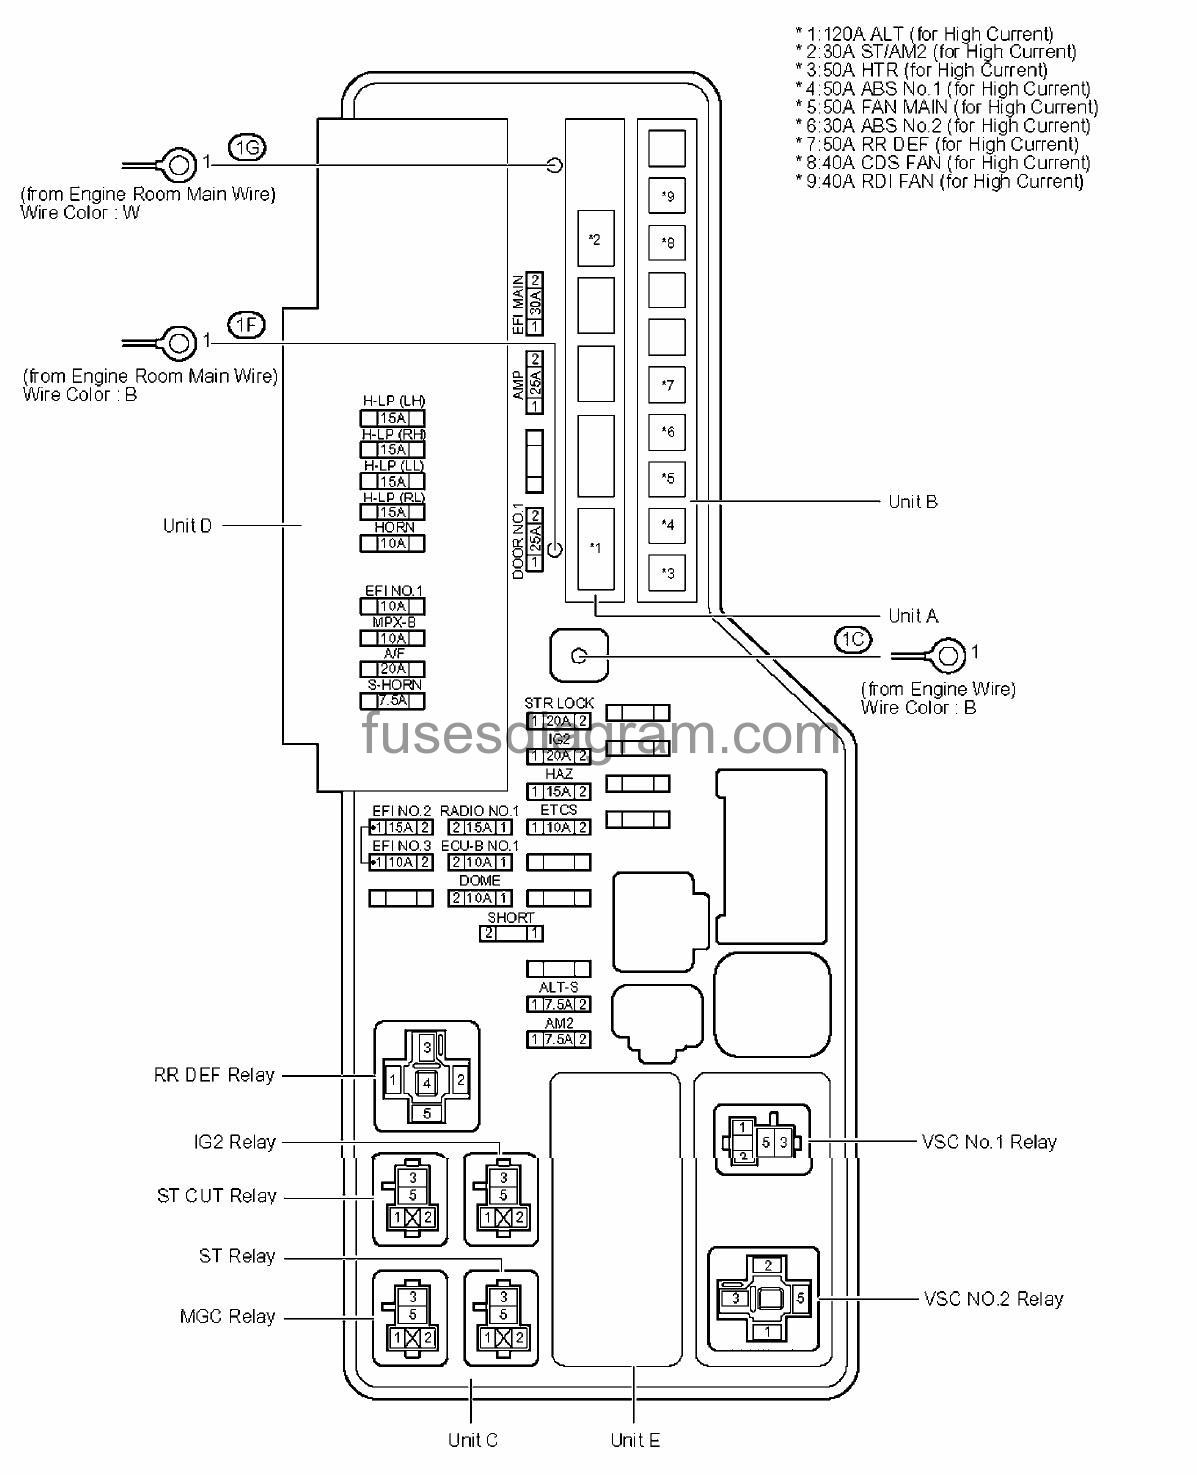 2010 Toyota Camry Fuse Box Diagram : 34 Wiring Diagram